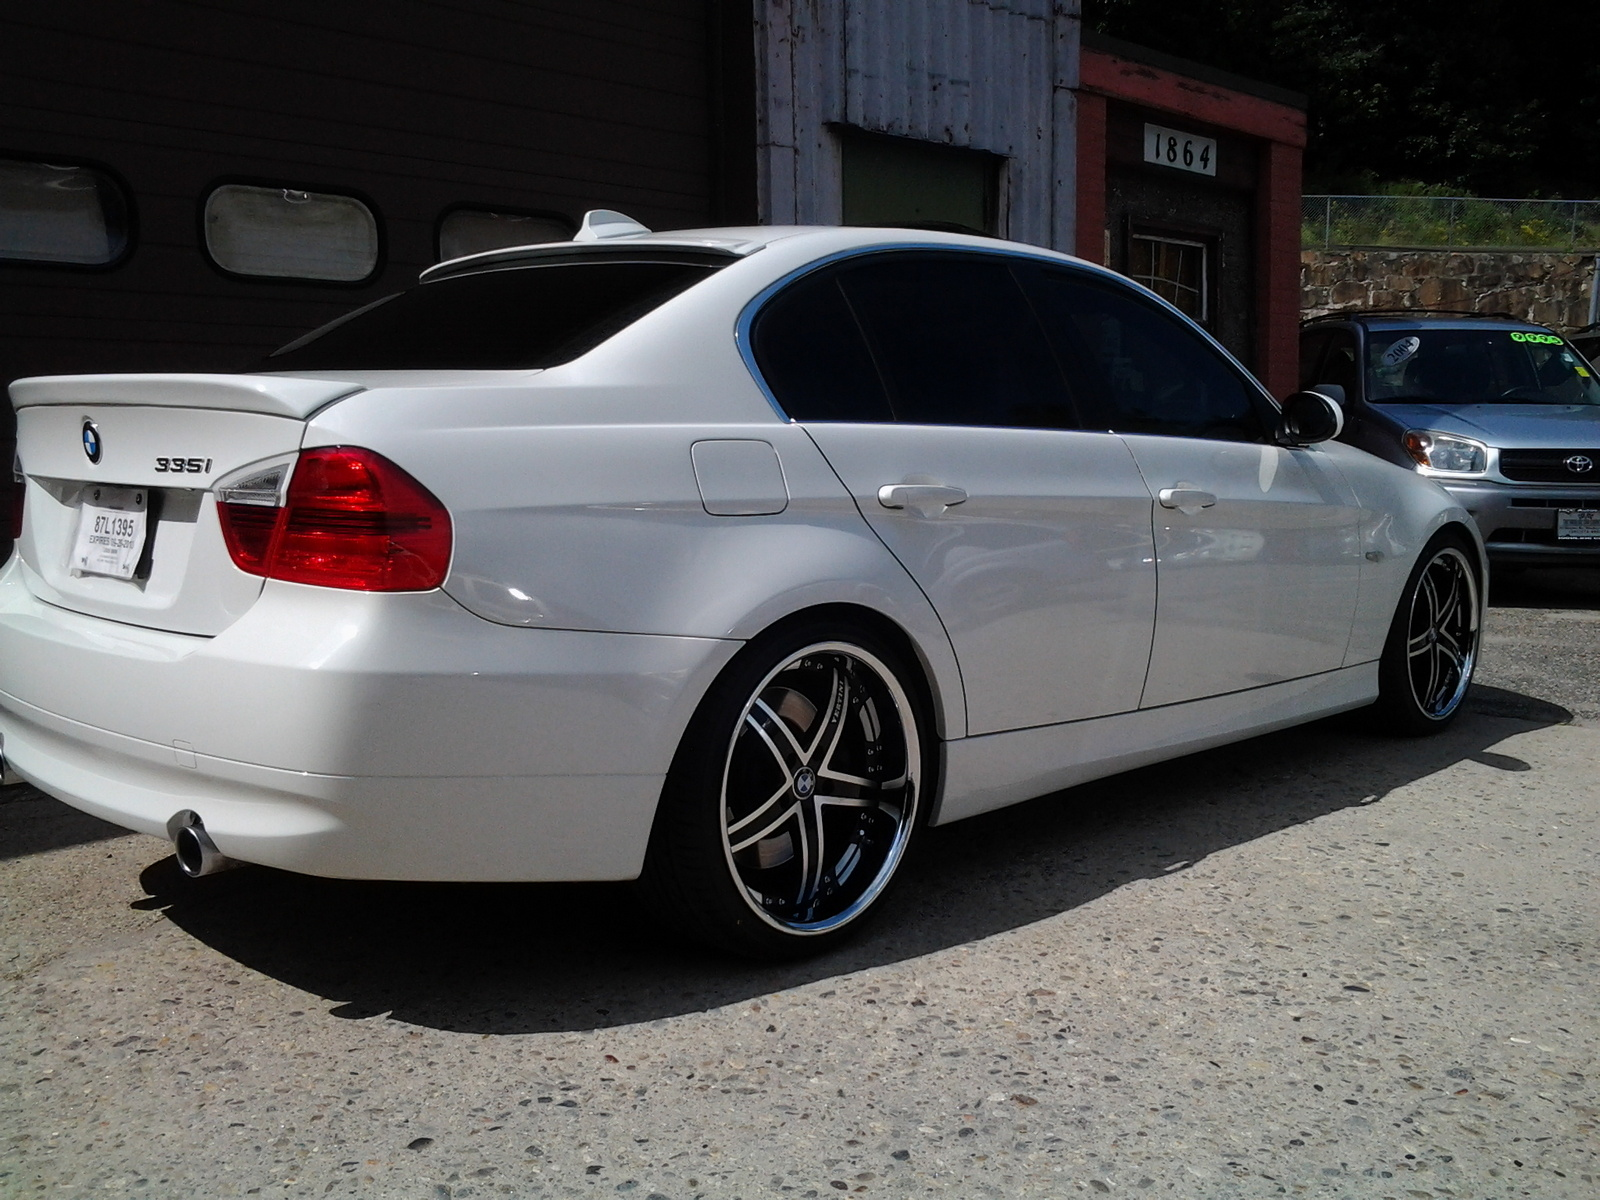 BMW 3 series 335is 2008 photo - 5